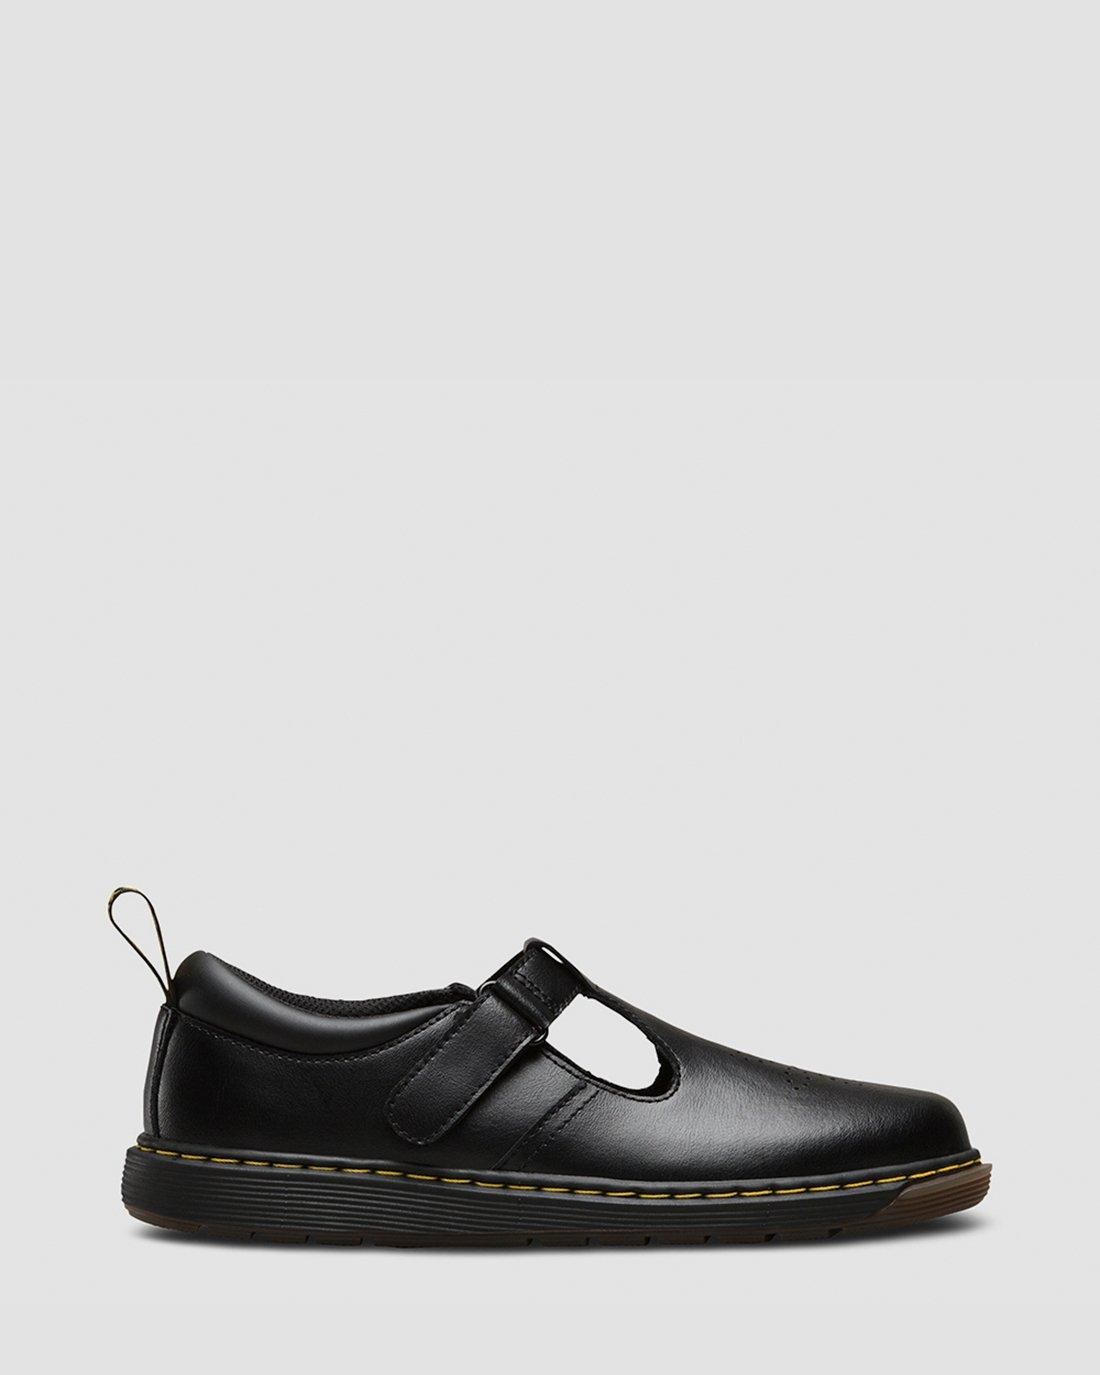 Youth Dulice | Dr. Martens